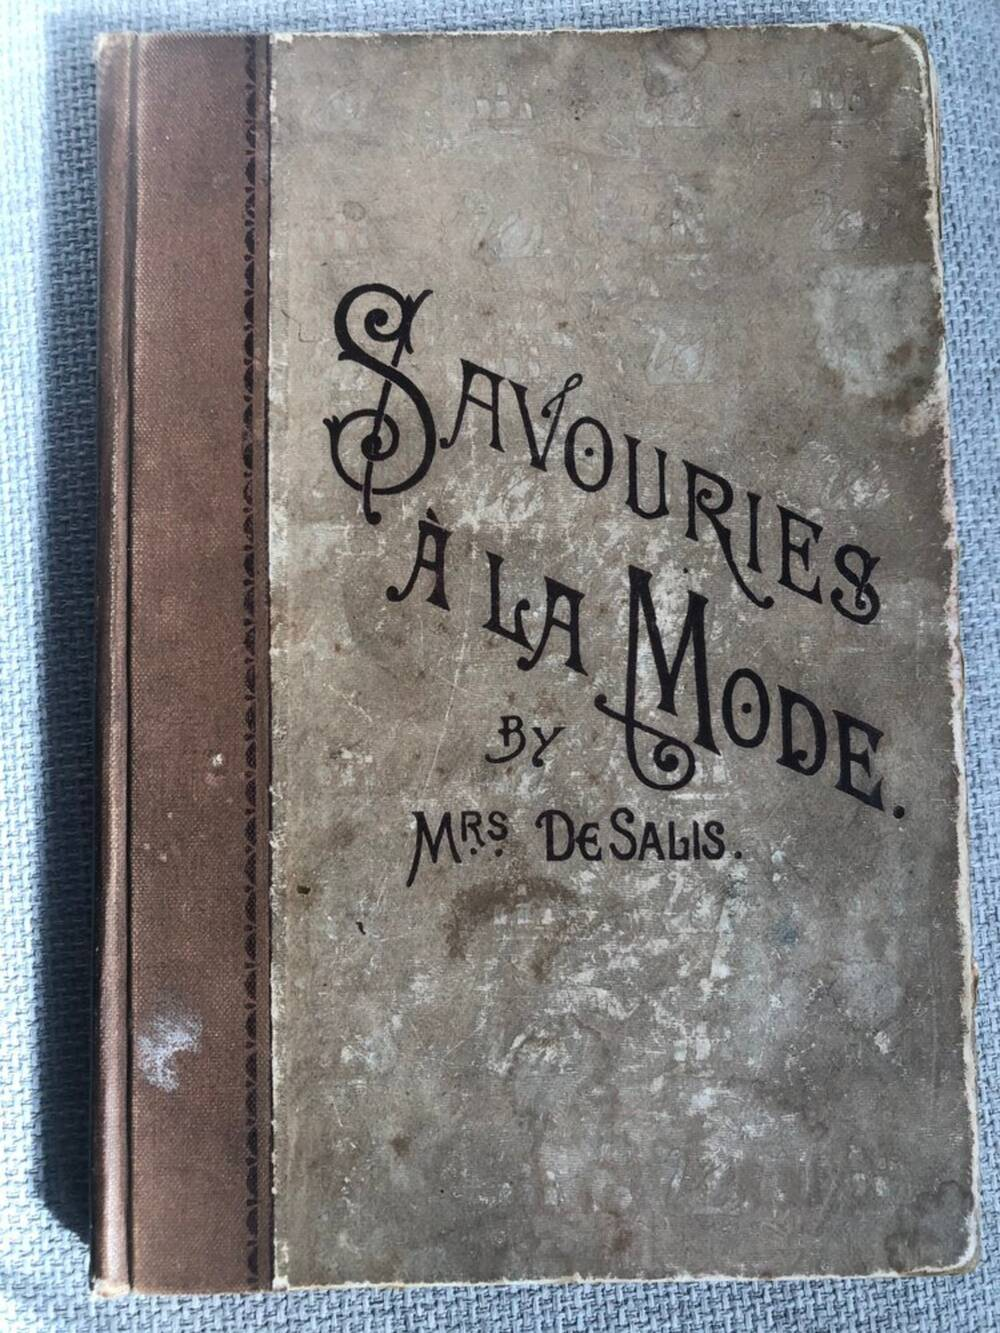 A battered cover of an old cookbook: 'Savouries a la mode' by Mrs De Salis.